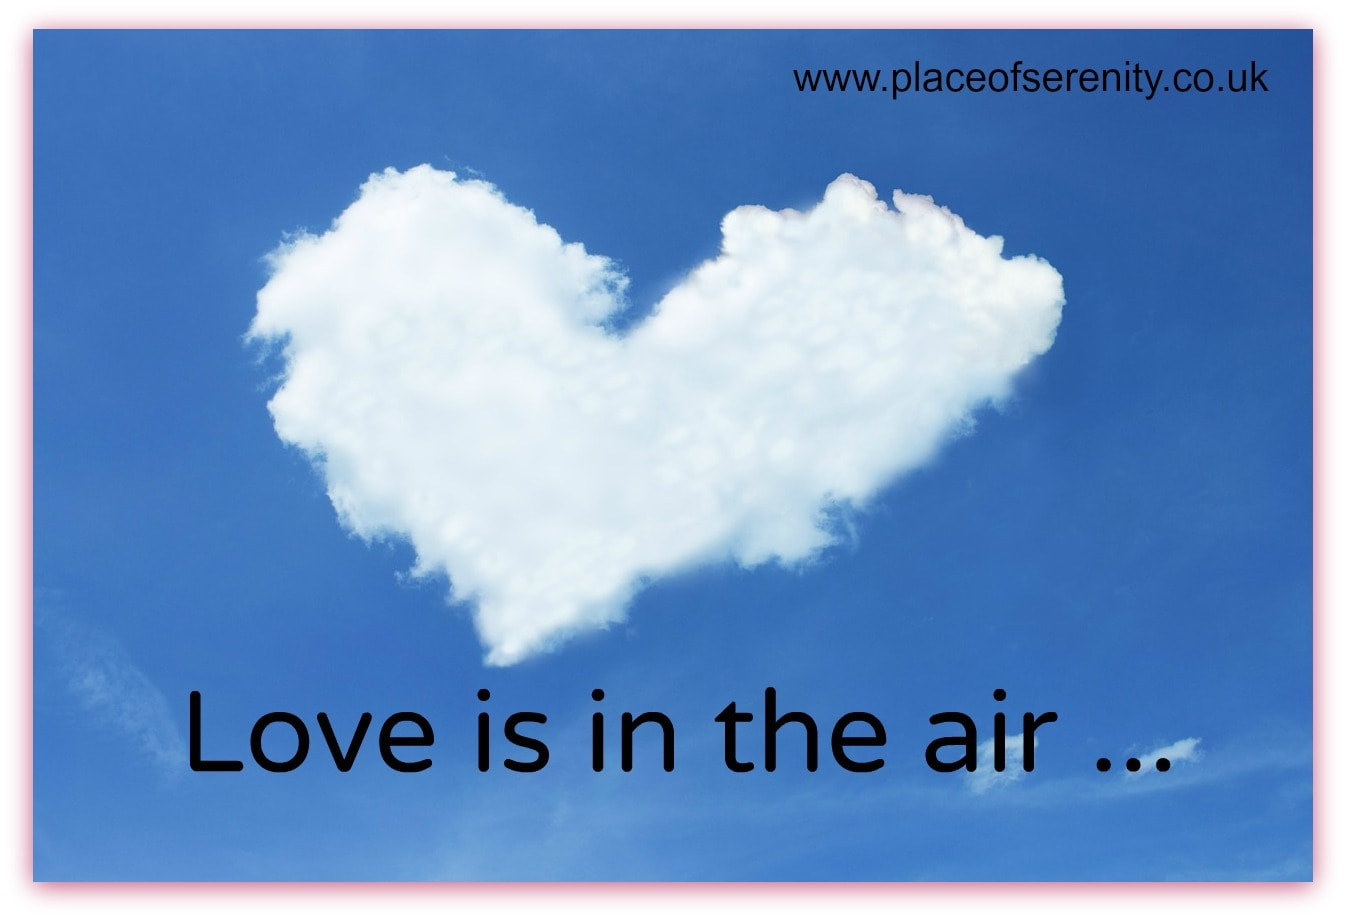 Place of Serenity |Love is in the air